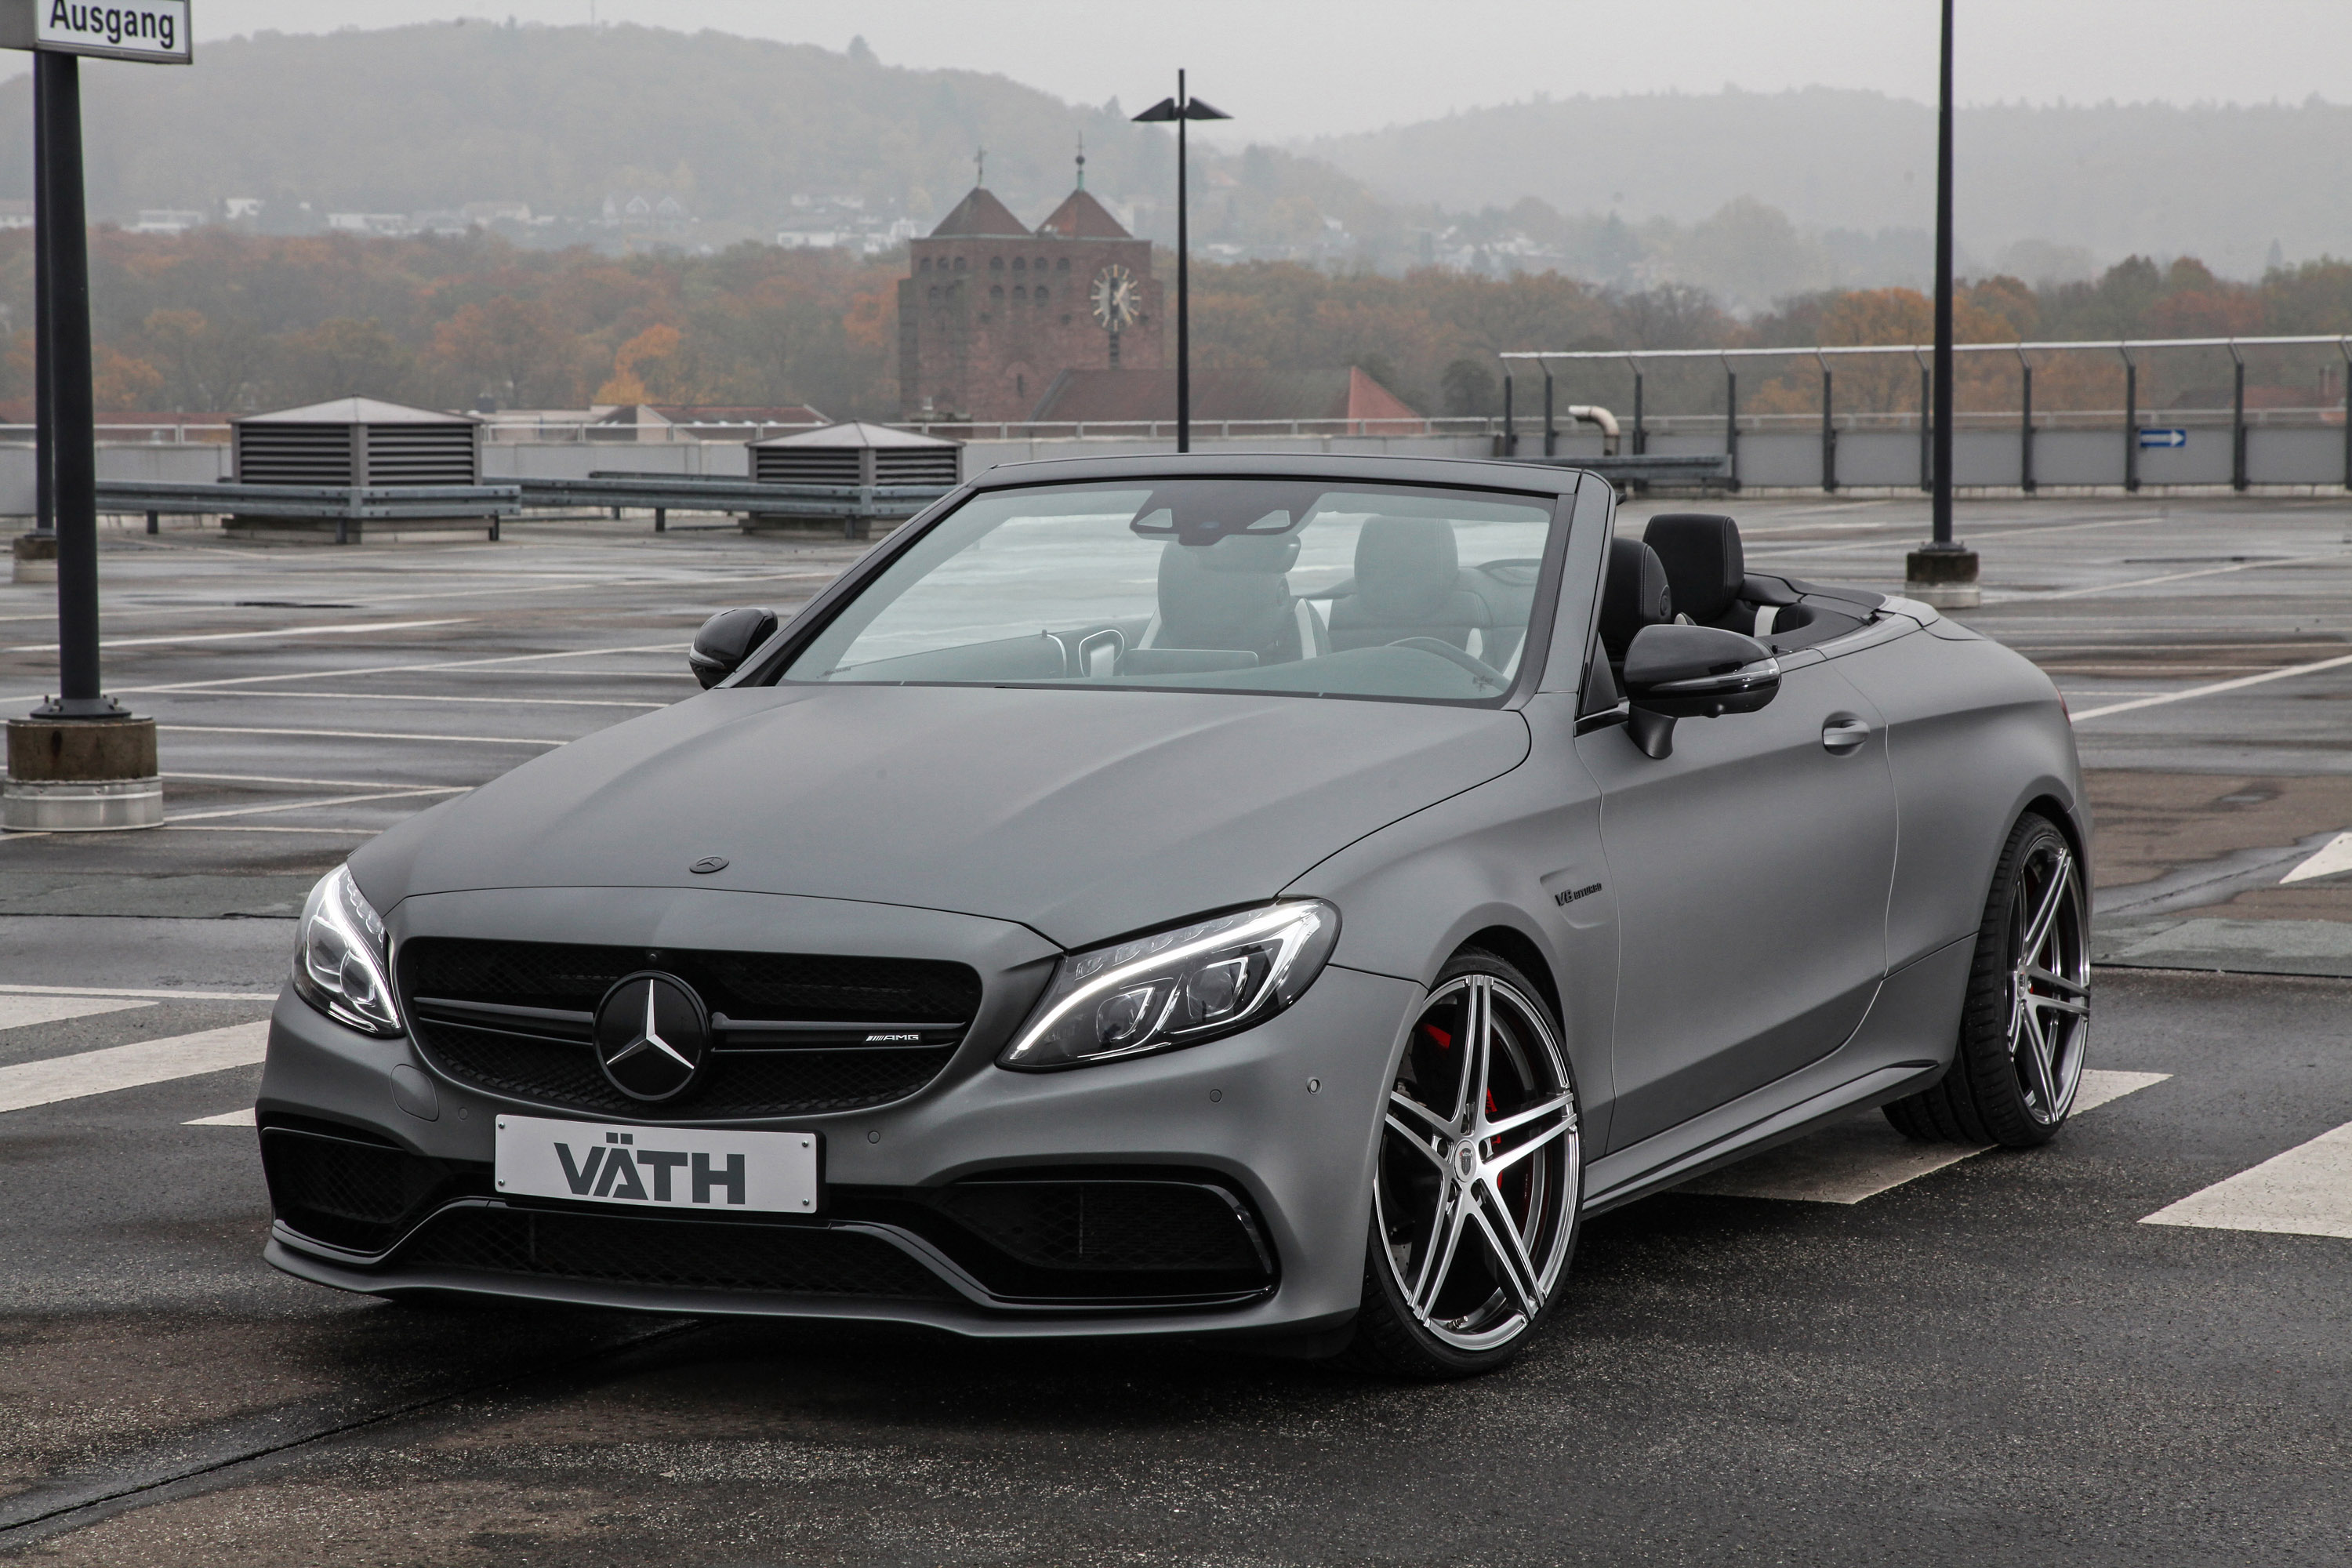 2018 vath mercedes amg c class coupe and cabriolet picture 135380. Black Bedroom Furniture Sets. Home Design Ideas